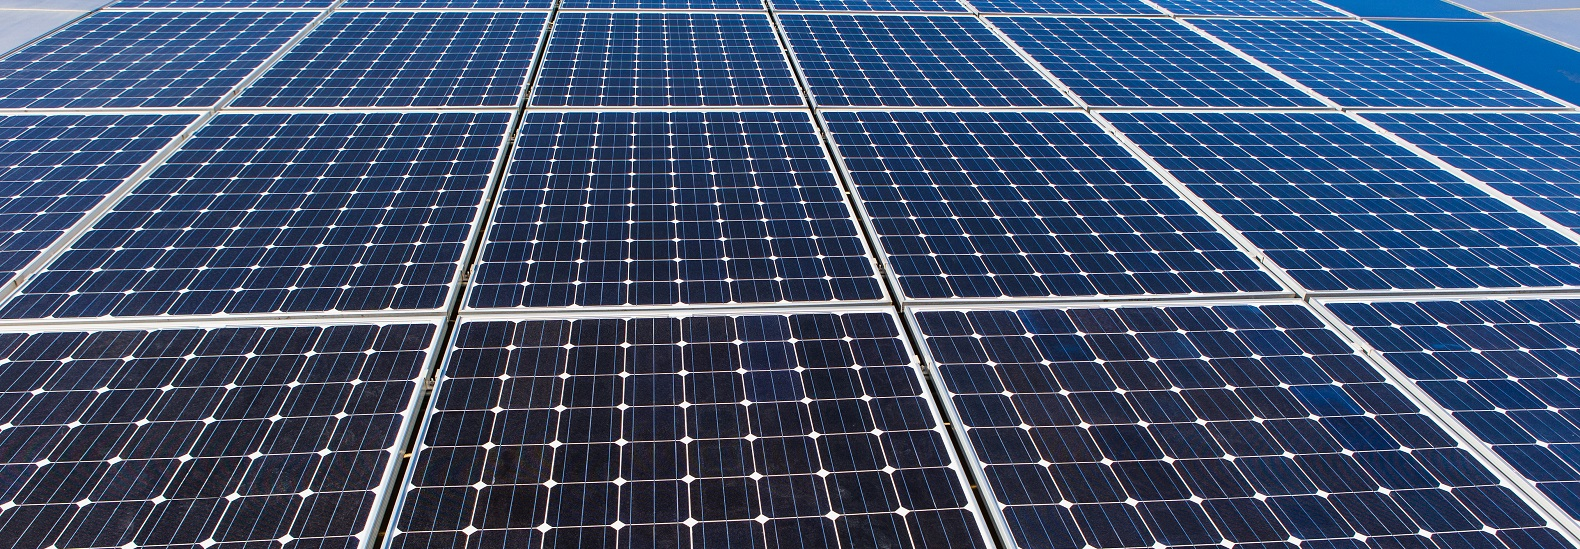 The Cost Of High Efficiency Solar Panels Fell 37 In 2017